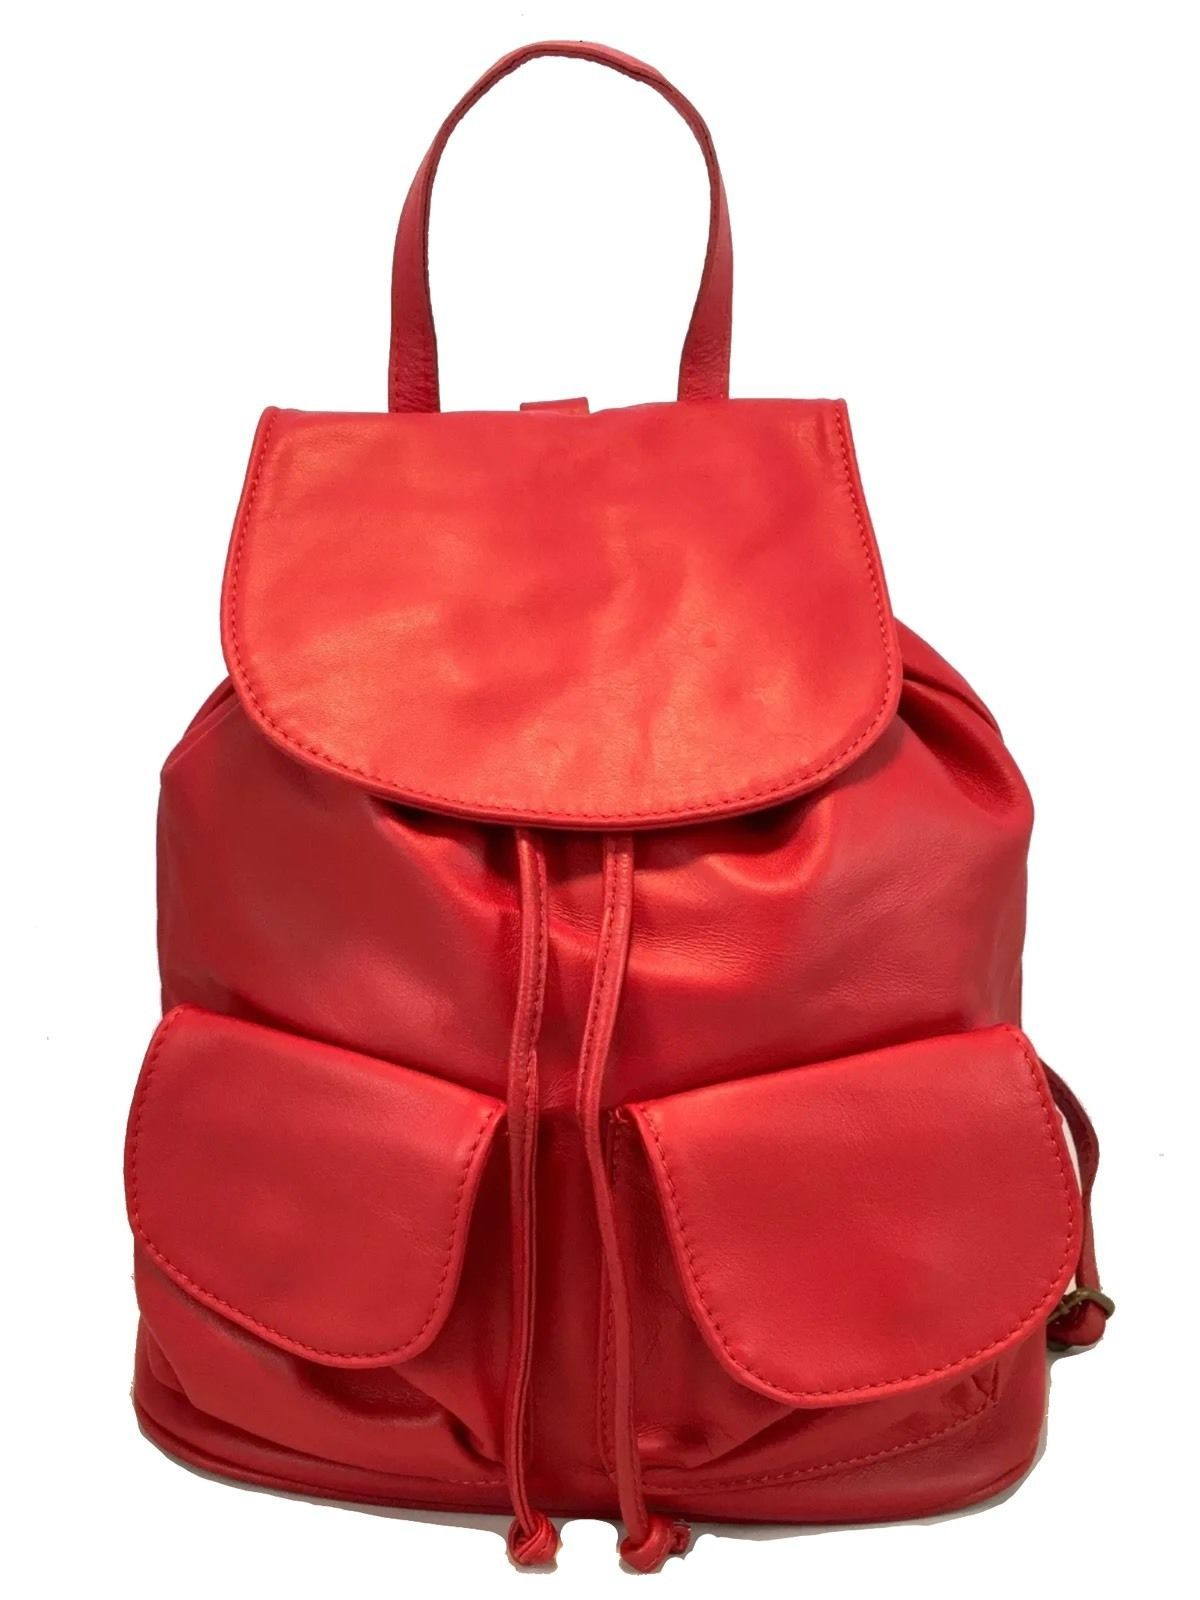 New Made in Italy Leather Red Backpack Shoulder Bag Purse